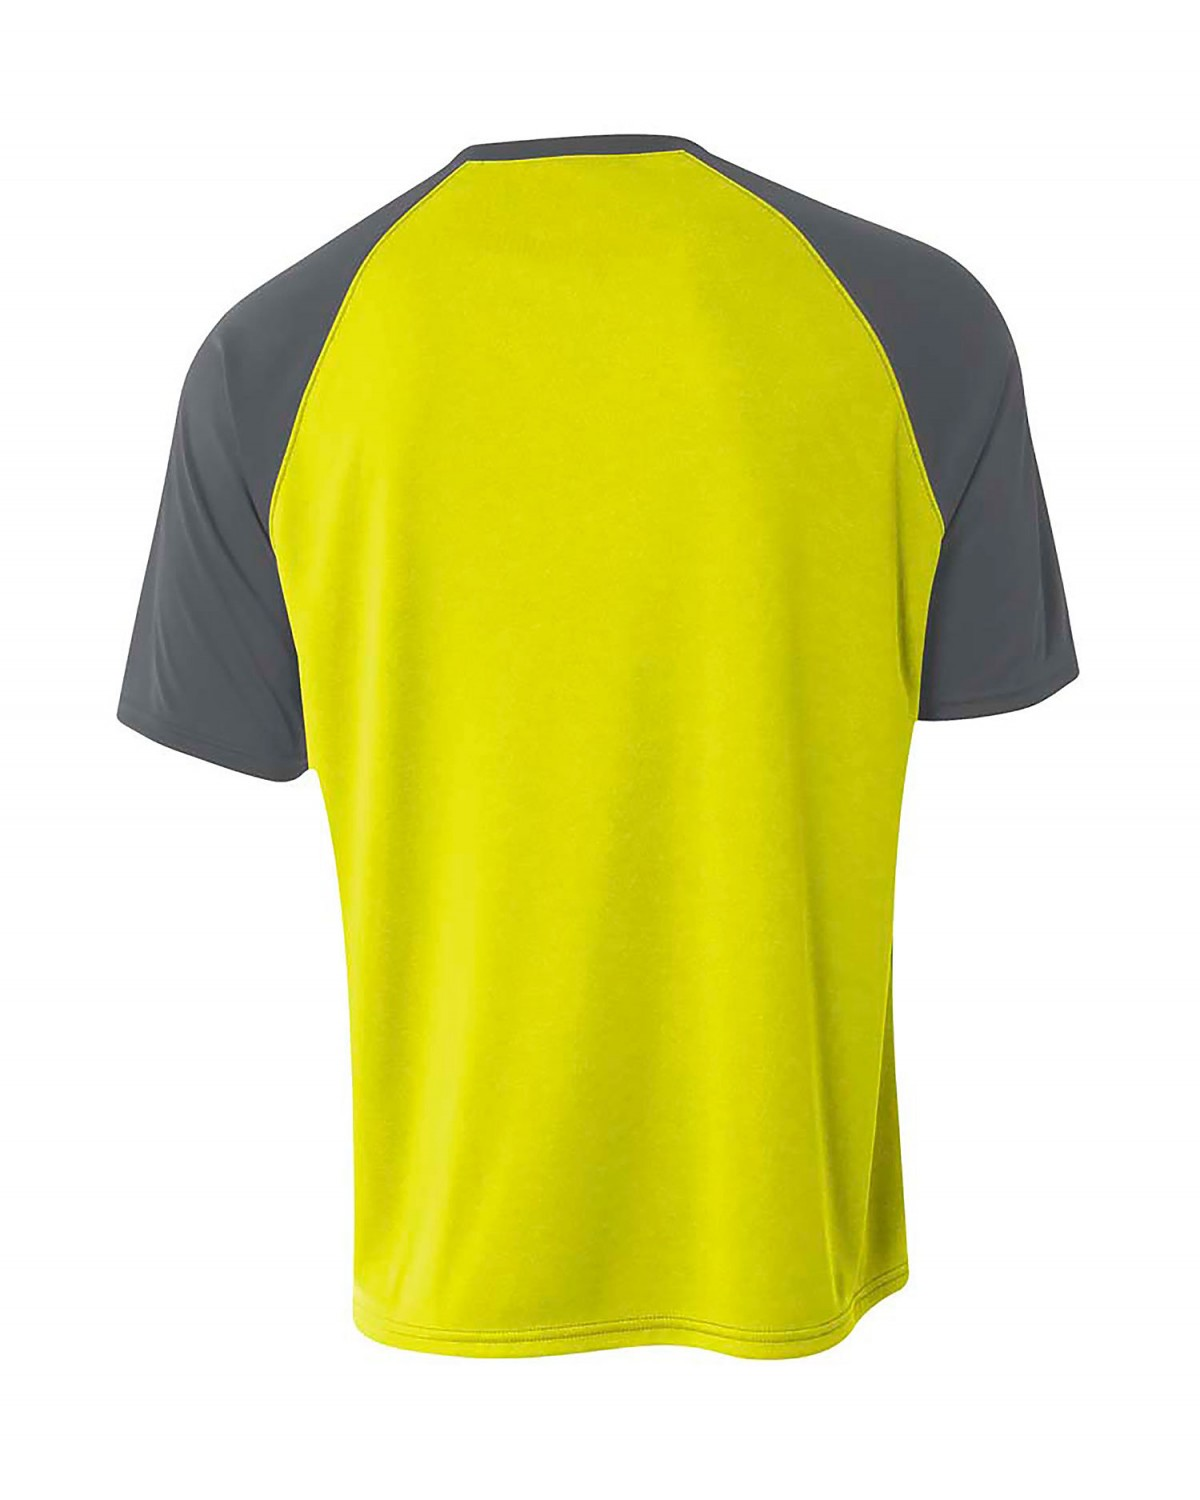 A4N3373 A4 Safety Yellow/Graphite